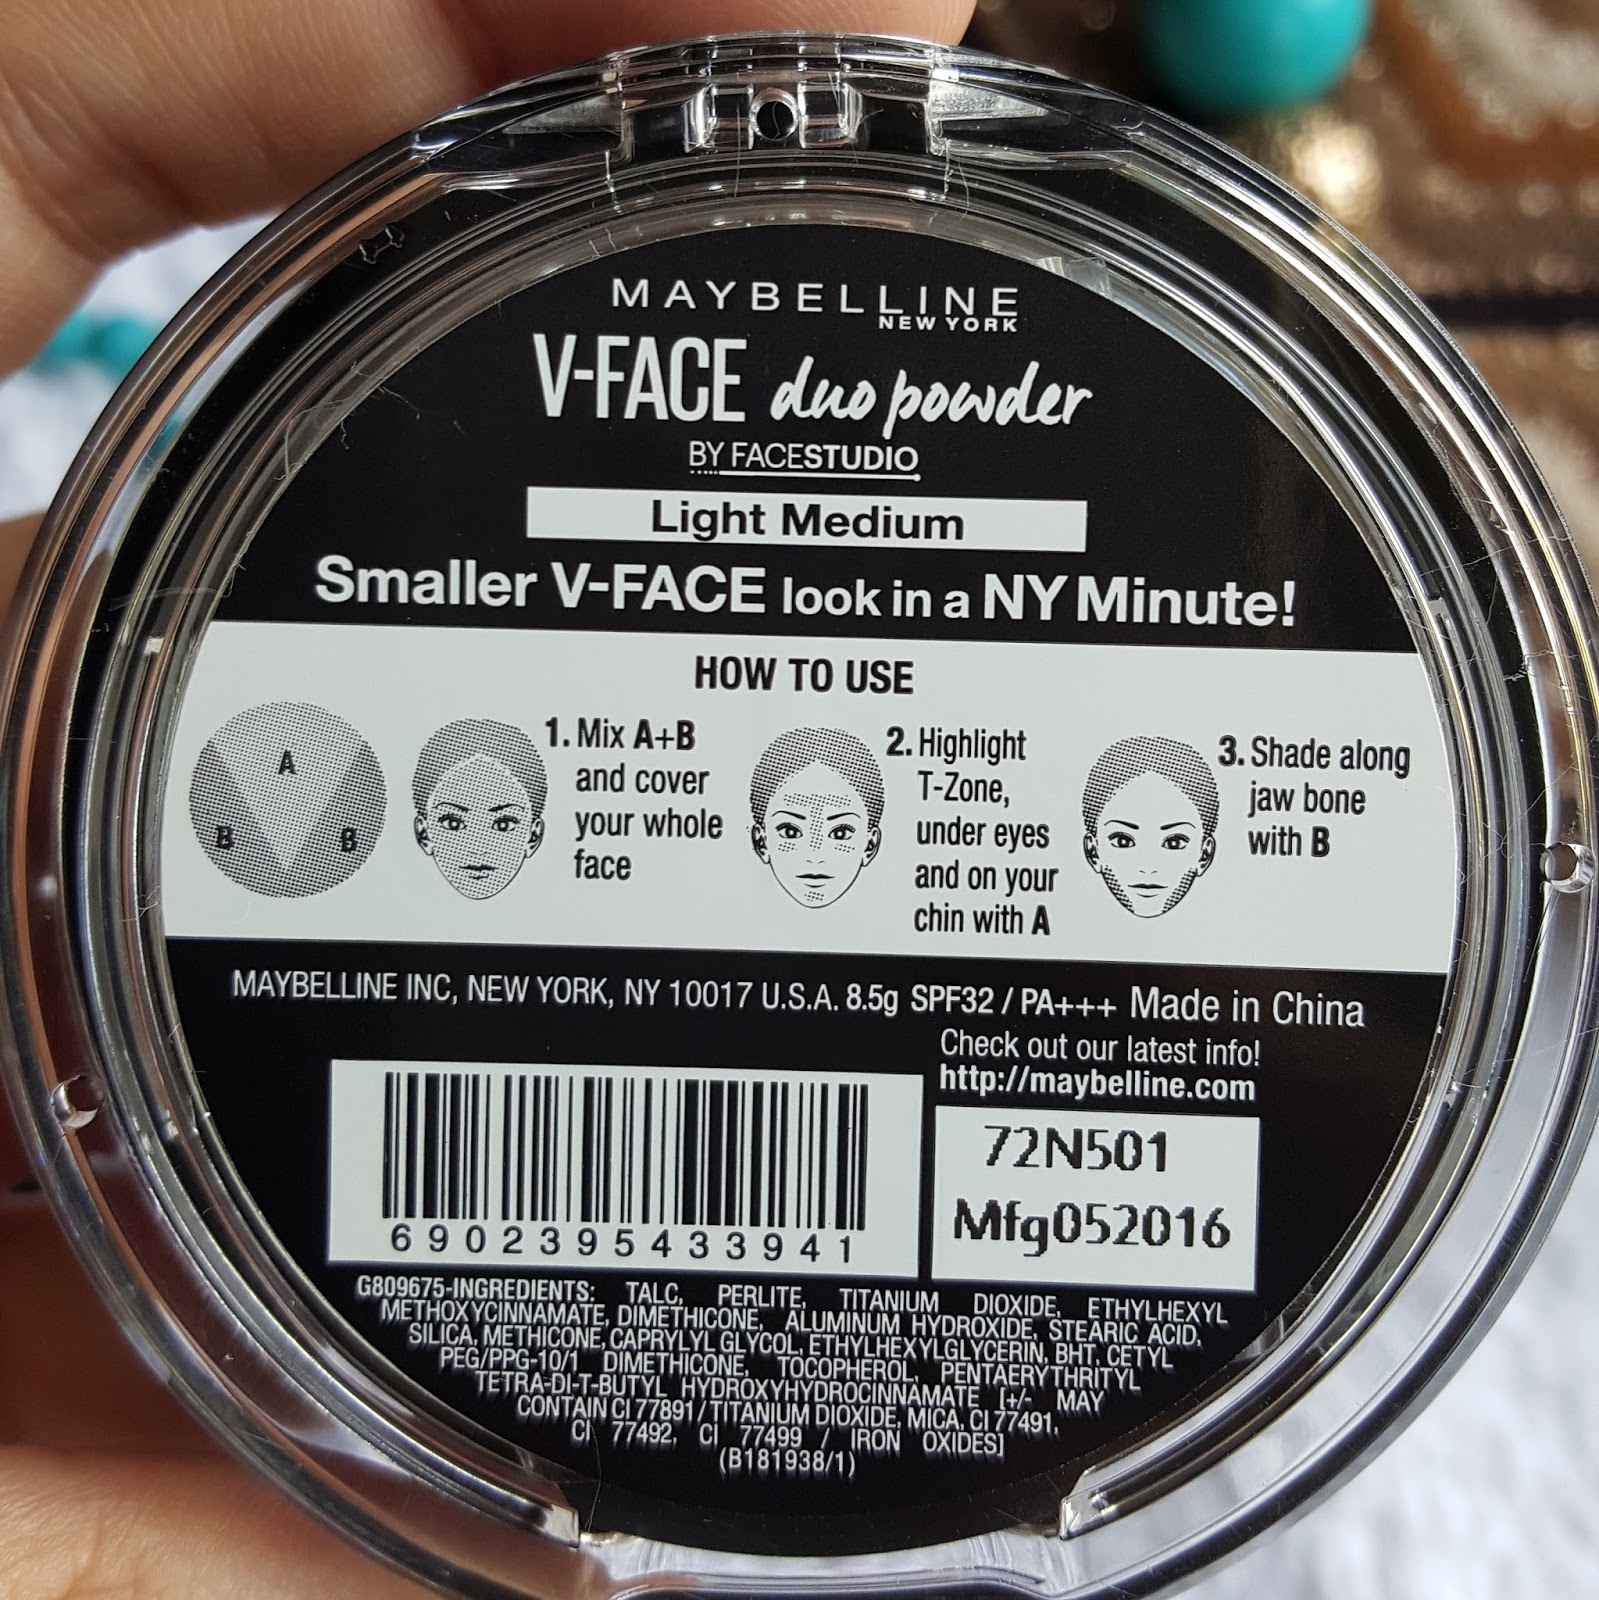 Ridzi Makeup Maybelline Face Studio V Shape Powder 01 Light Med You Can Use Both The All Over And Then Darker Shade On Contouring Areas While Lighter Highlighted Has A Mineralize